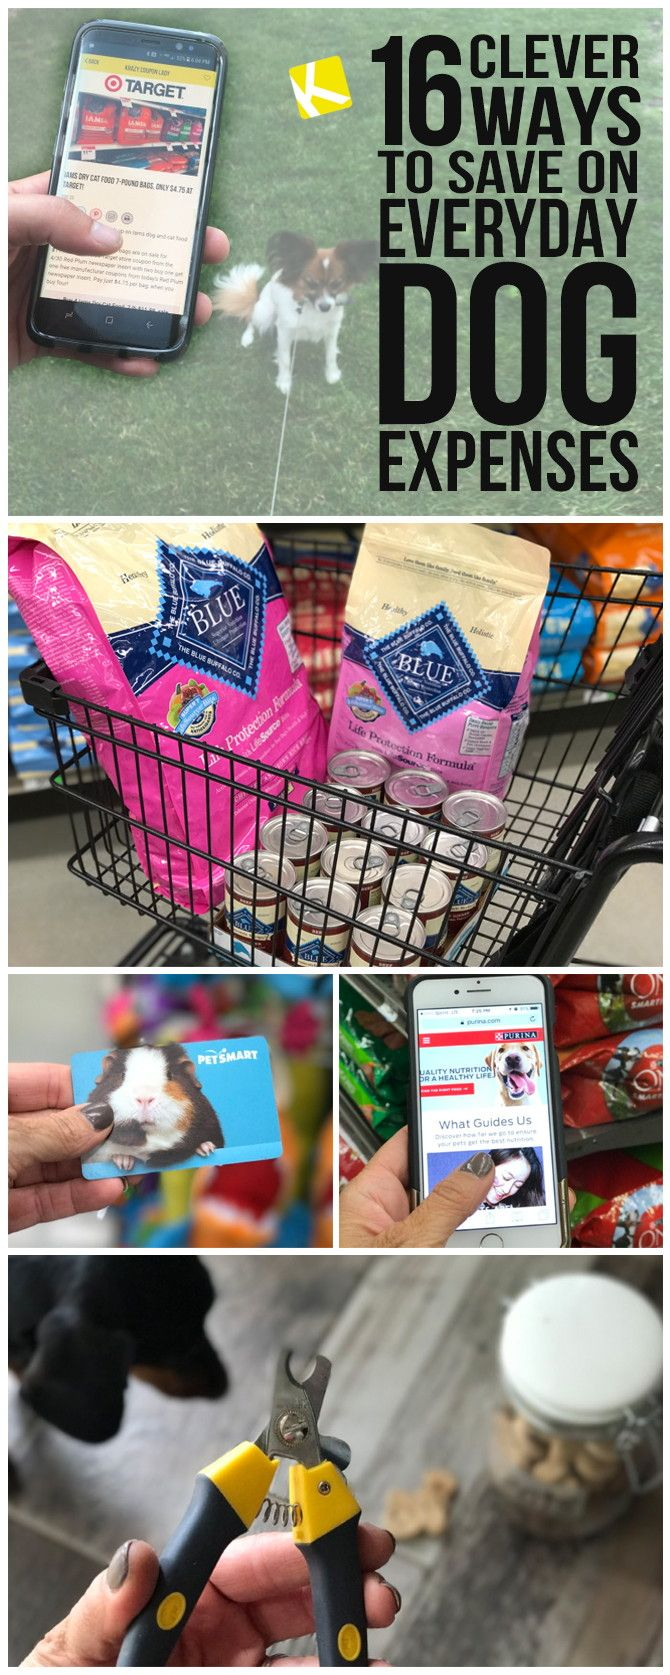 27 best the krazy coupon lady app images on pinterest budget 16 clever ways to save on everyday dog expenses fandeluxe Images